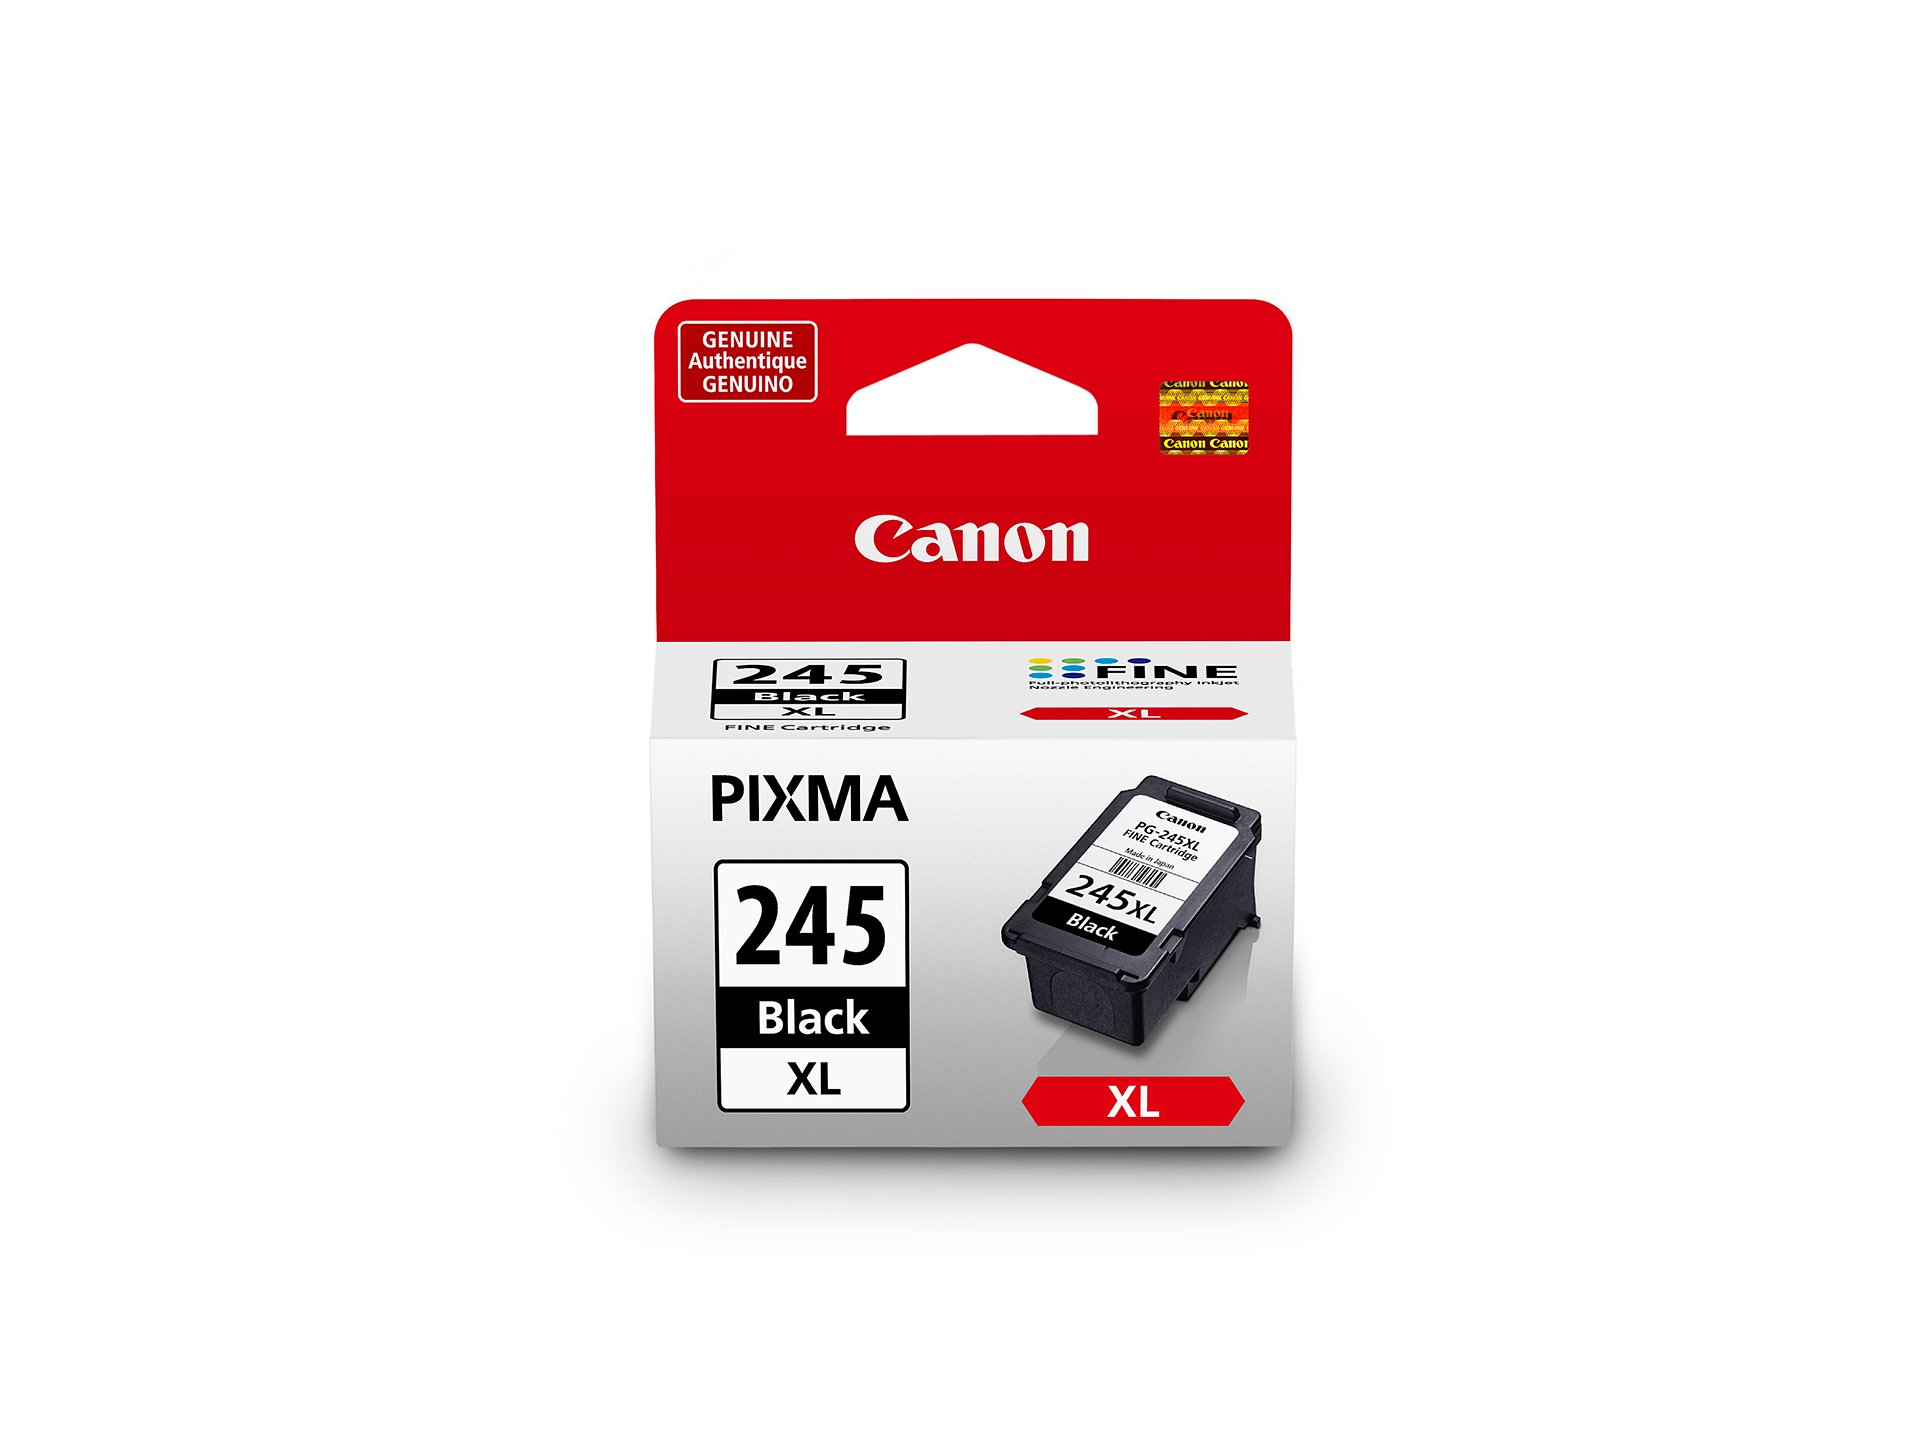 Canon PG-245XL Black Cartridge, Compatible to MX492, MG3020,MG2920,MG2924, iP2820, MG2525 and MG2420 - 8278B001 by Canon